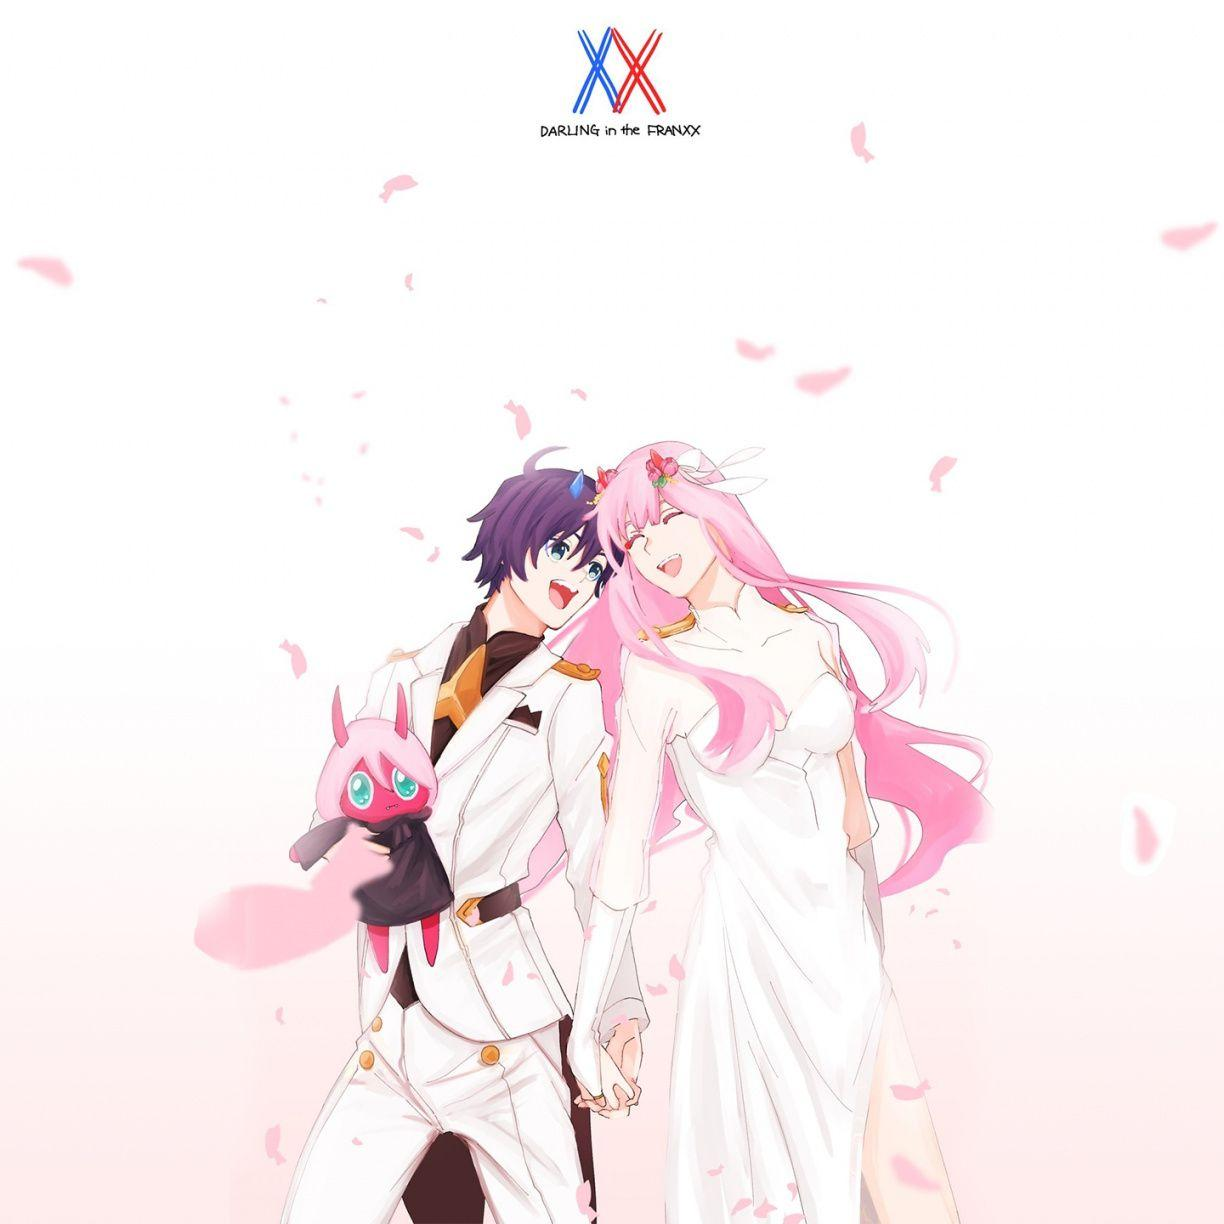 Anime Couple Wallpaper For 2 Phone Anime Wallpapers